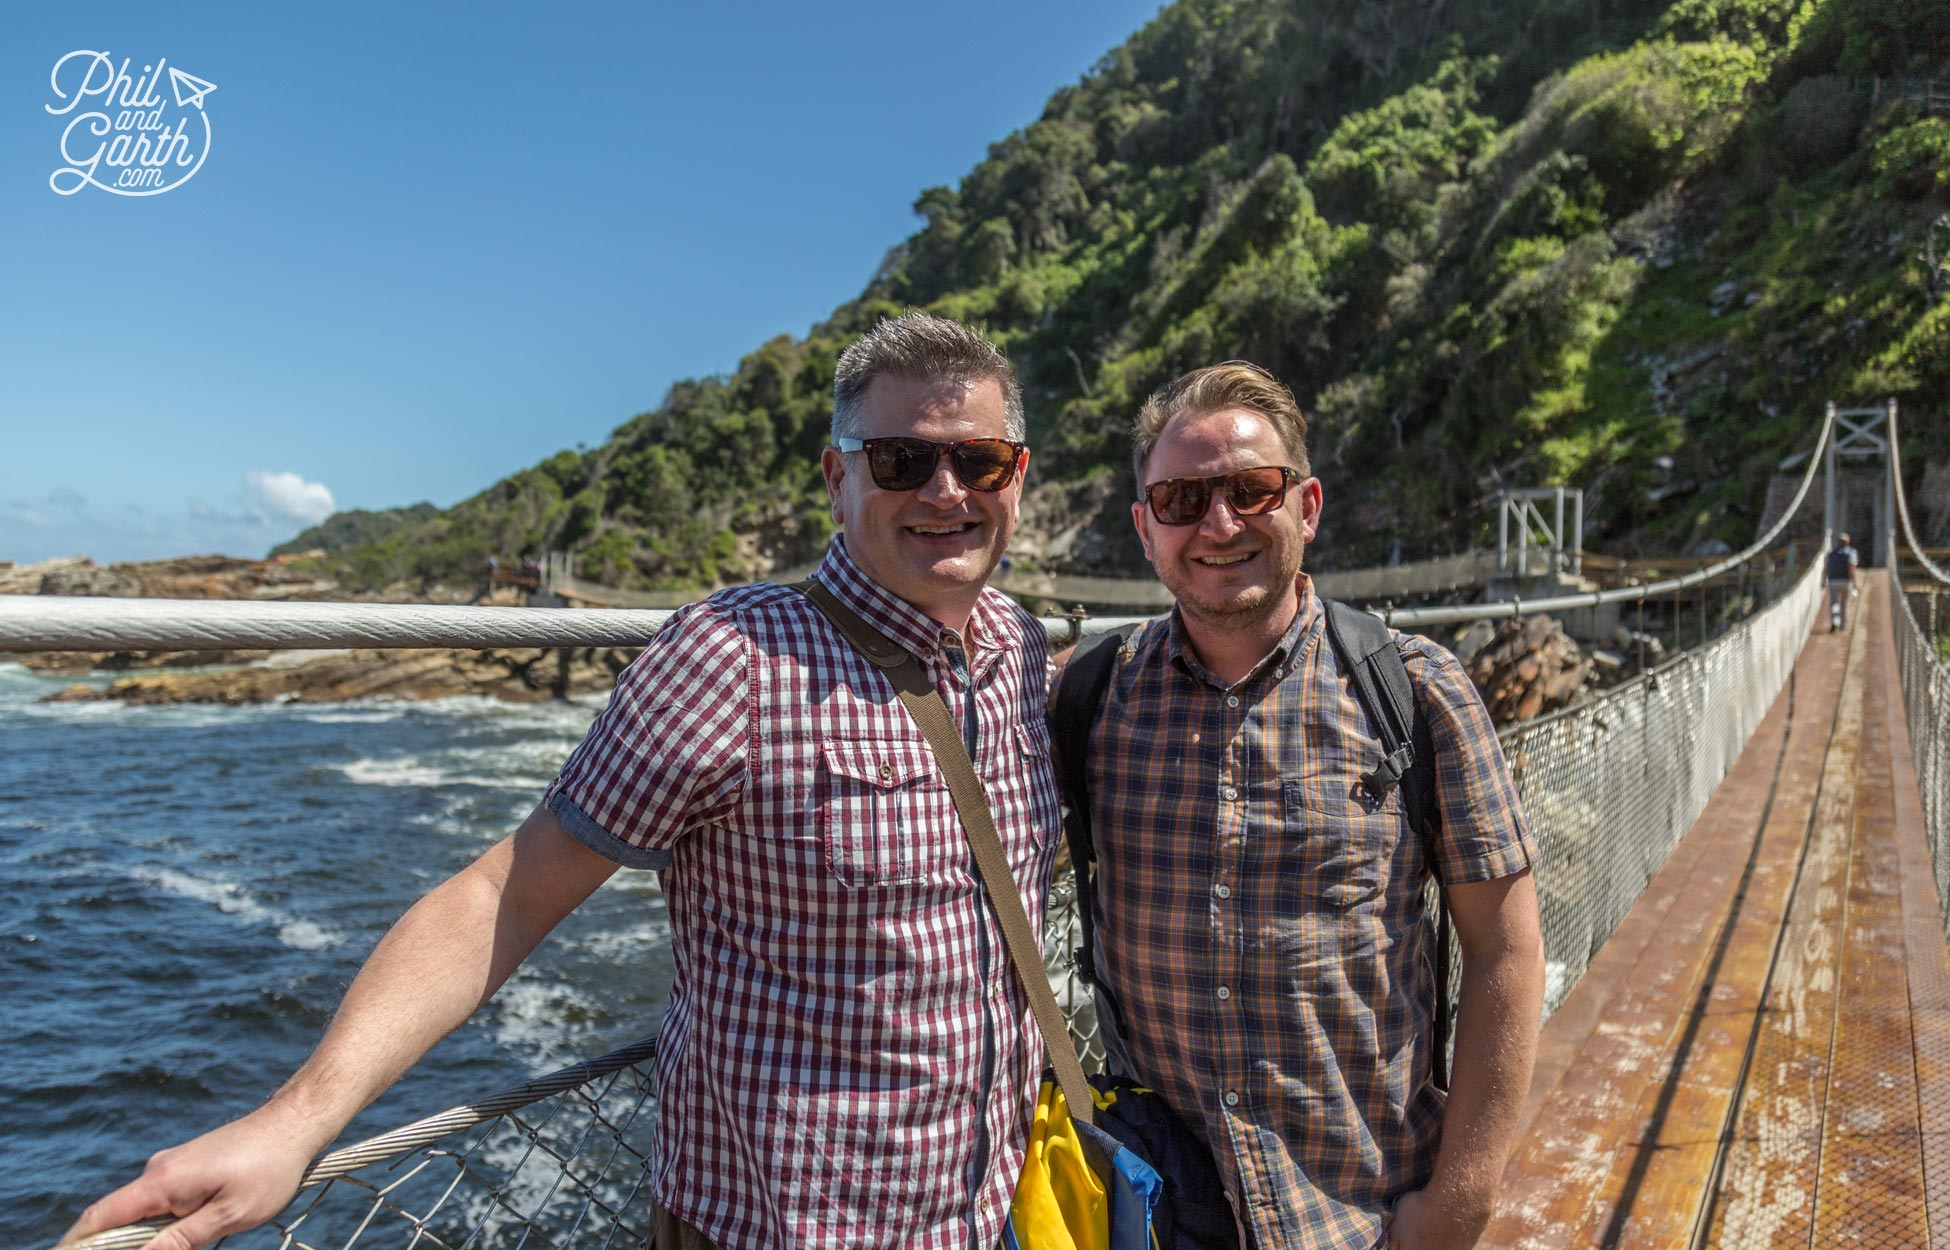 Phil and Garth on a suspension bridge at Tsitsikamma